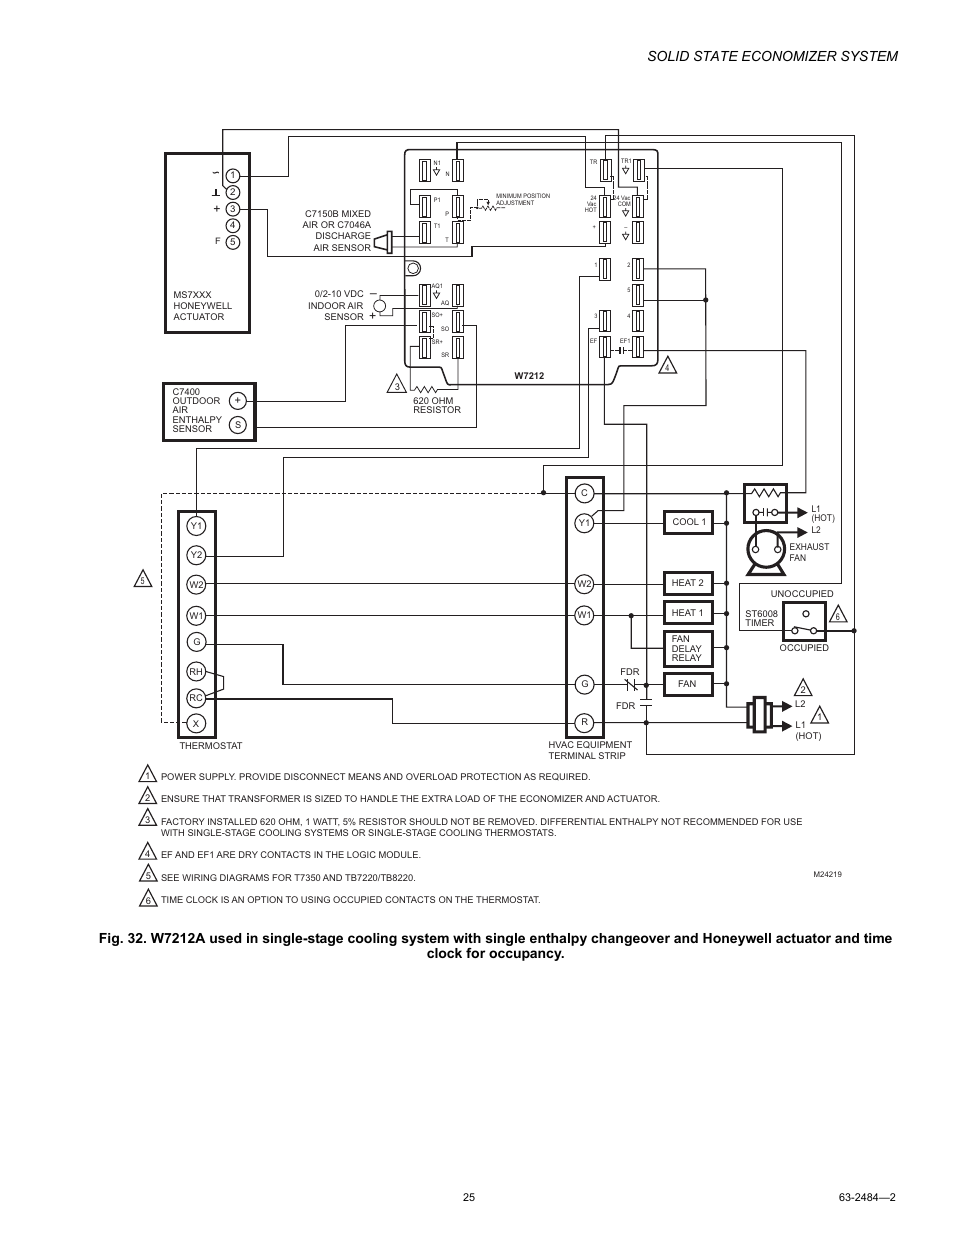 Solid state economizer system | Honeywell M8405 User Manual | Page 25 / 32